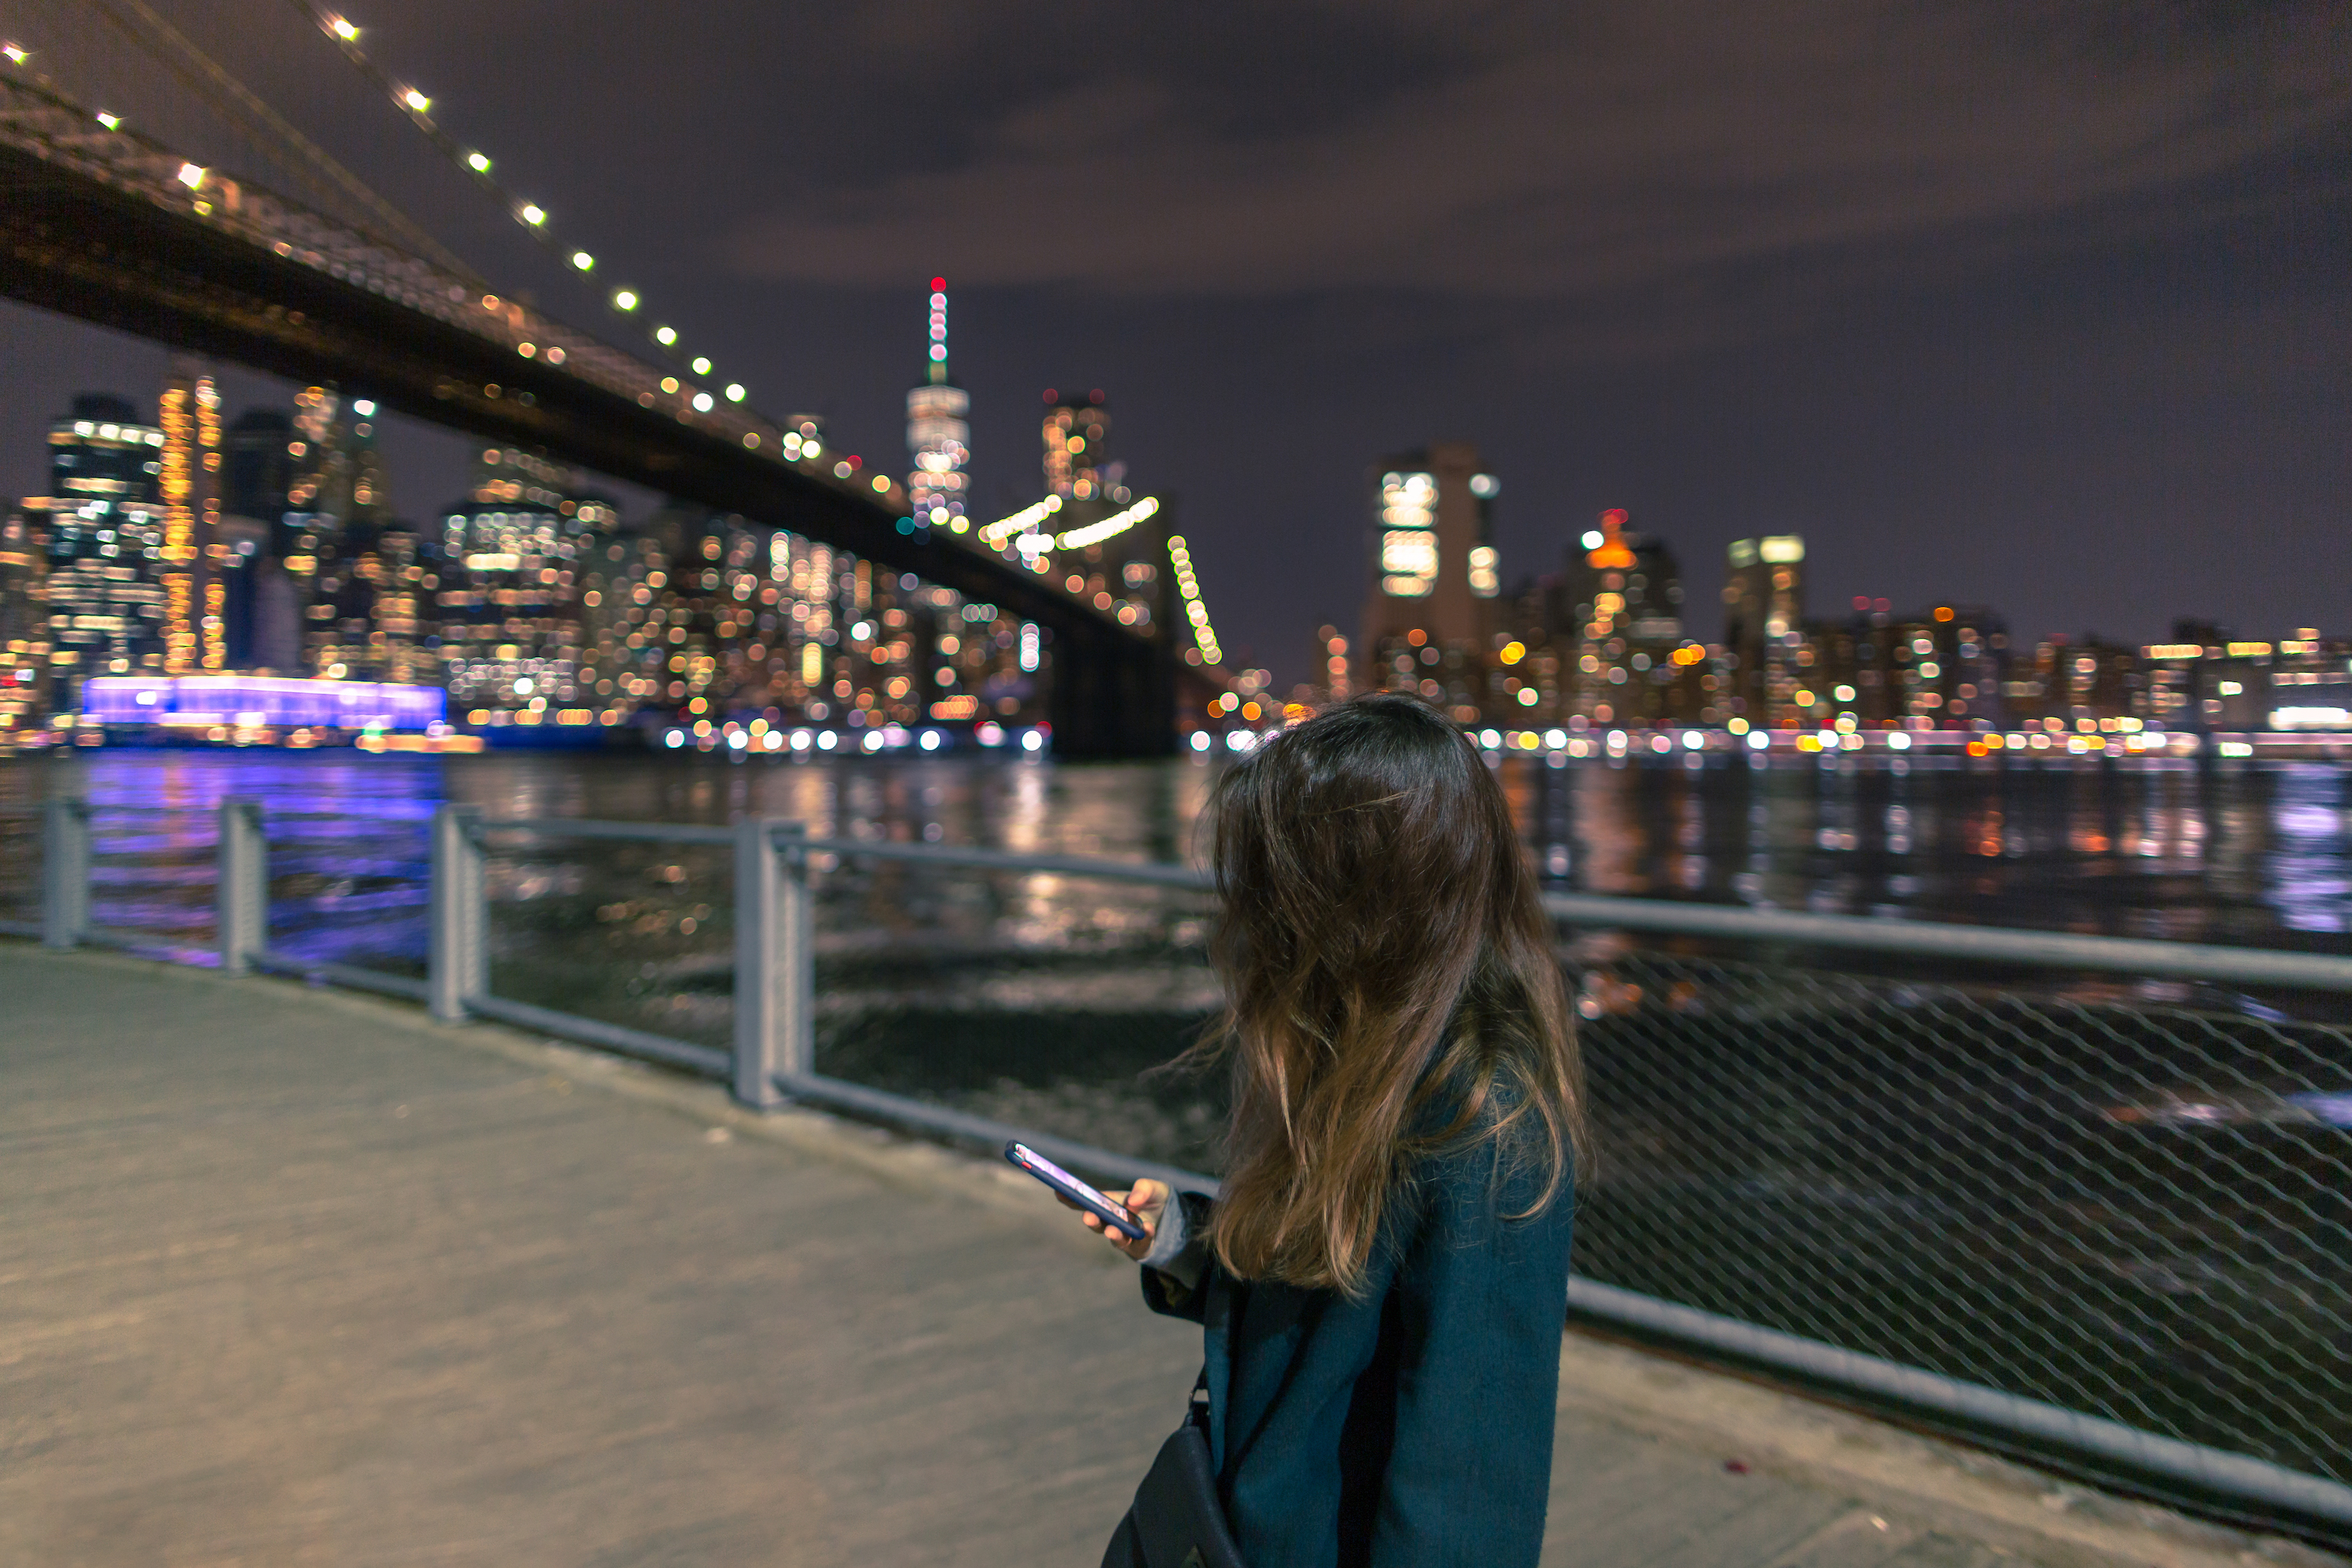 Women on the smartphone in New York at night example image 1